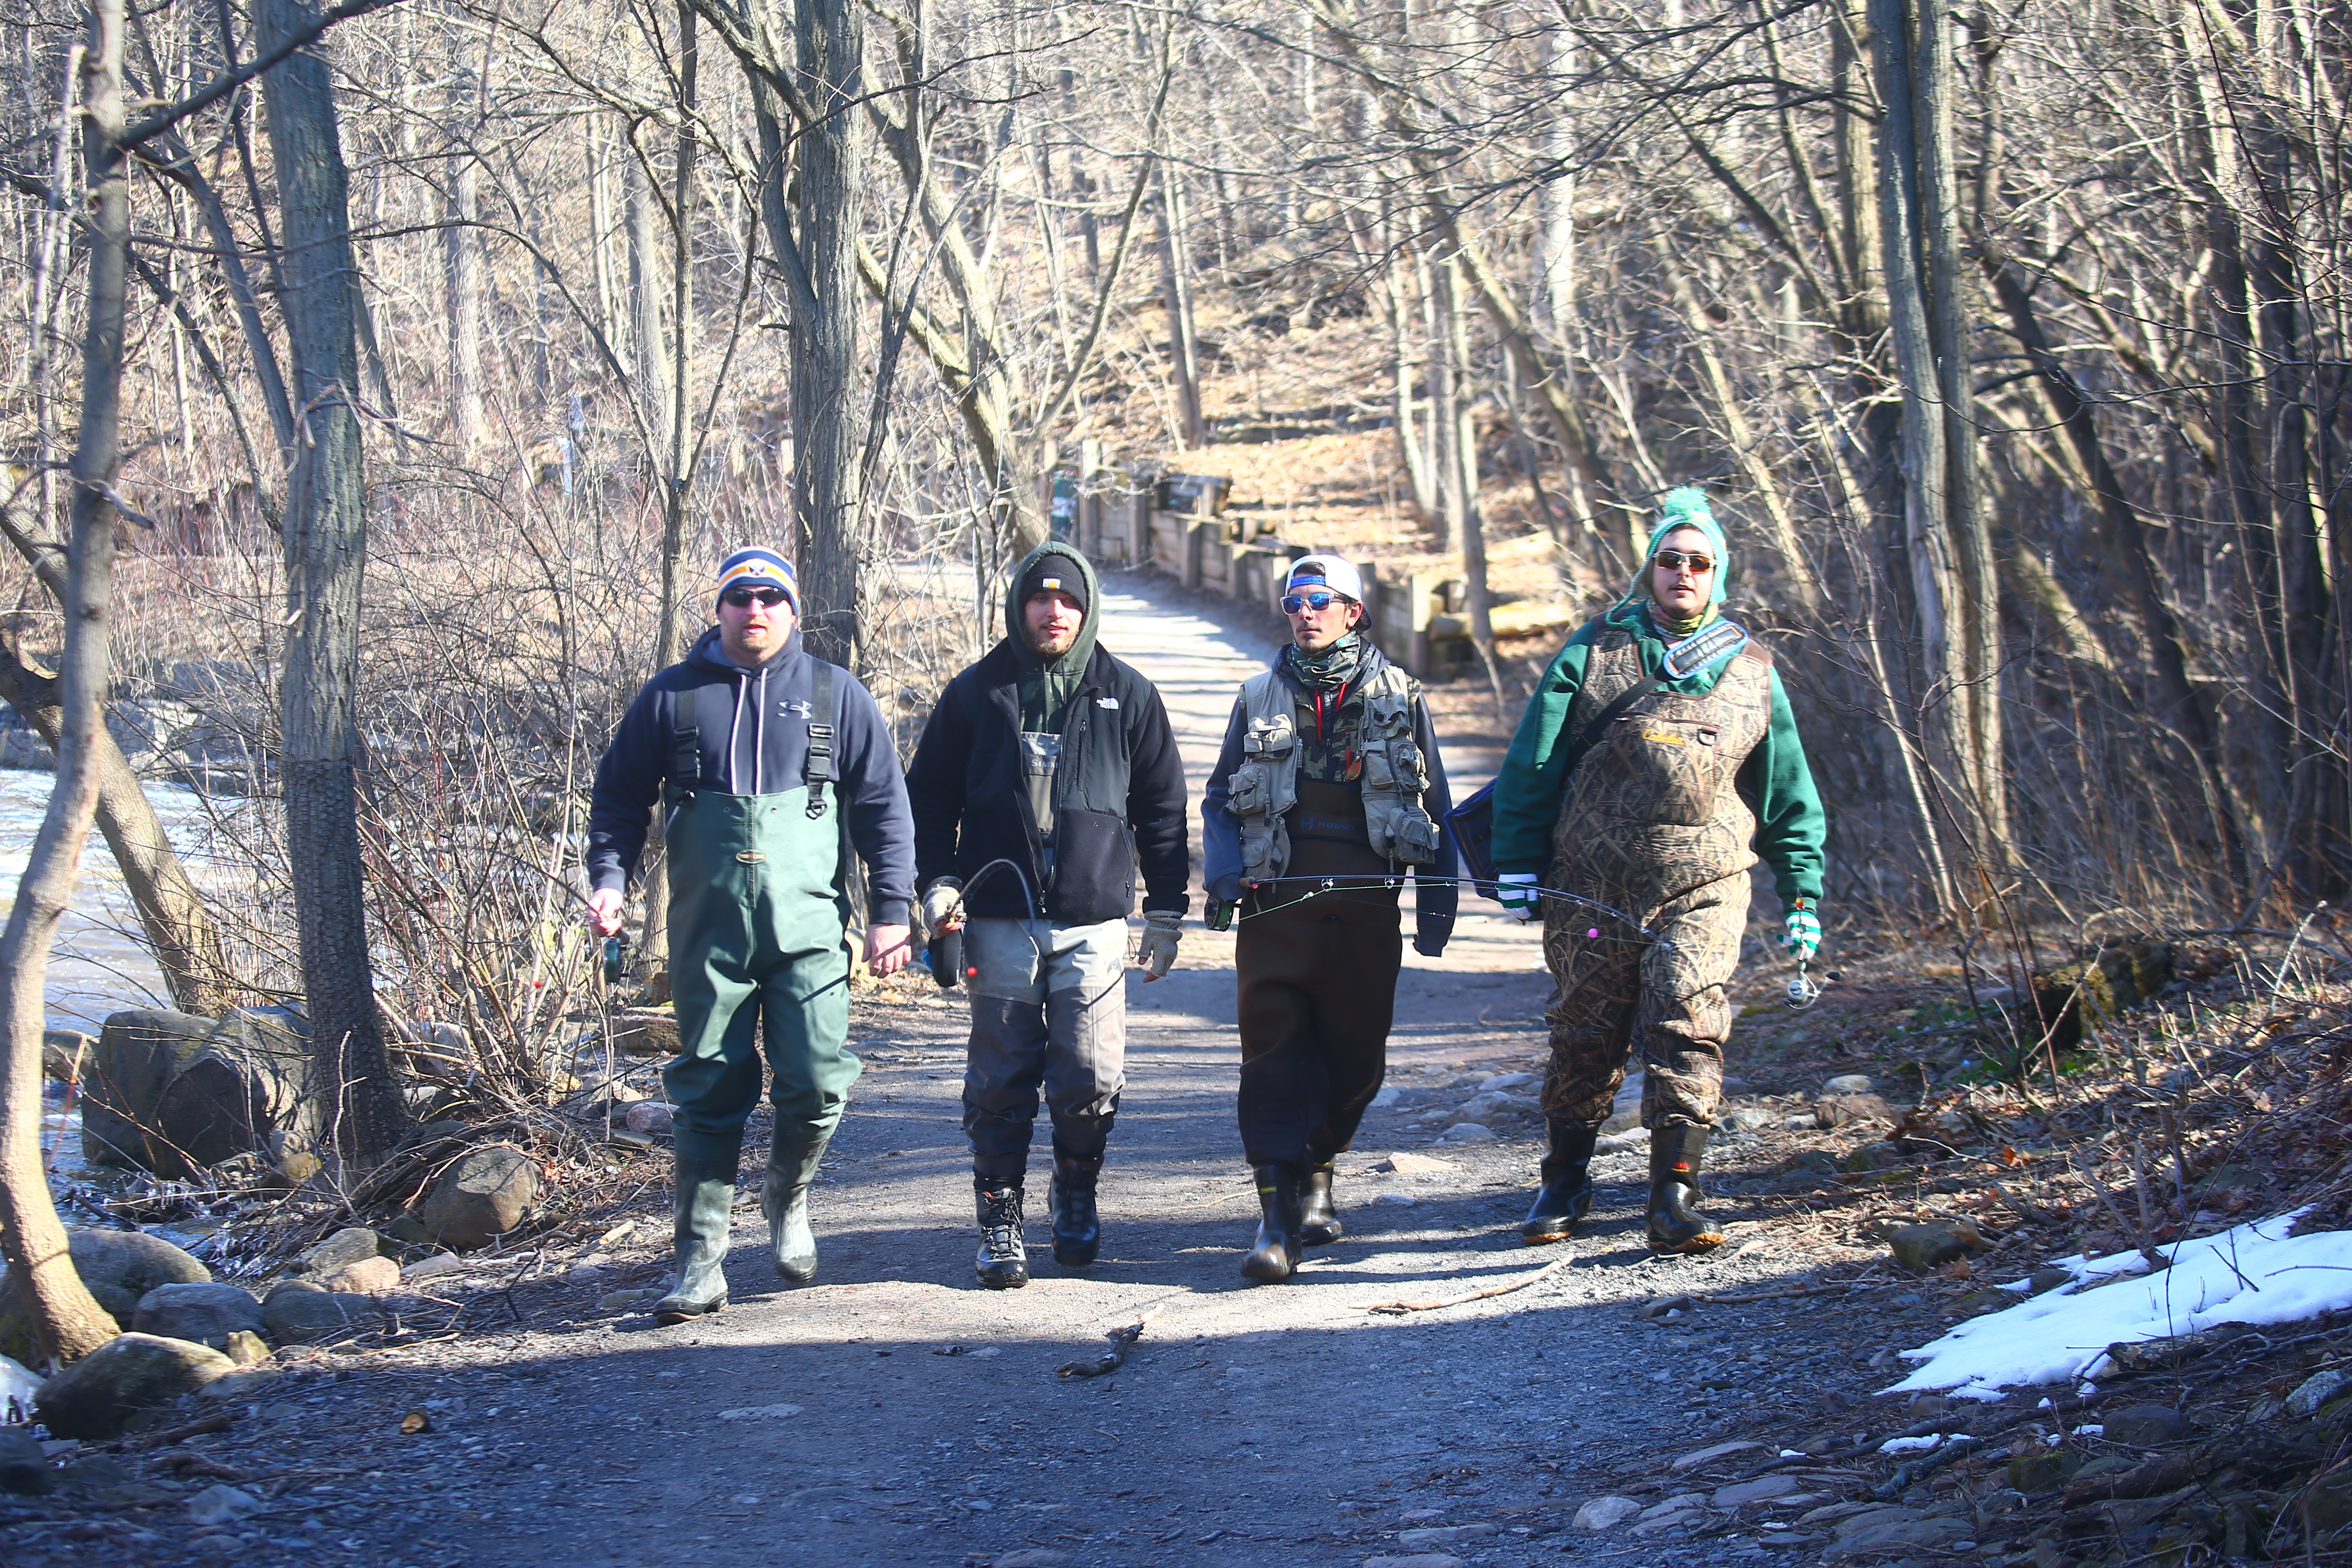 Anglers have formed the backbone of Newfane tourism for generations. On their way to pursue steelheads are, from left, Sean Haas, Matt Wagner, Zak Dolden and R.J. Brant. The four were headed to Burt Dam on Eighteen Mile Creek. (John Hickey/Buffalo News)